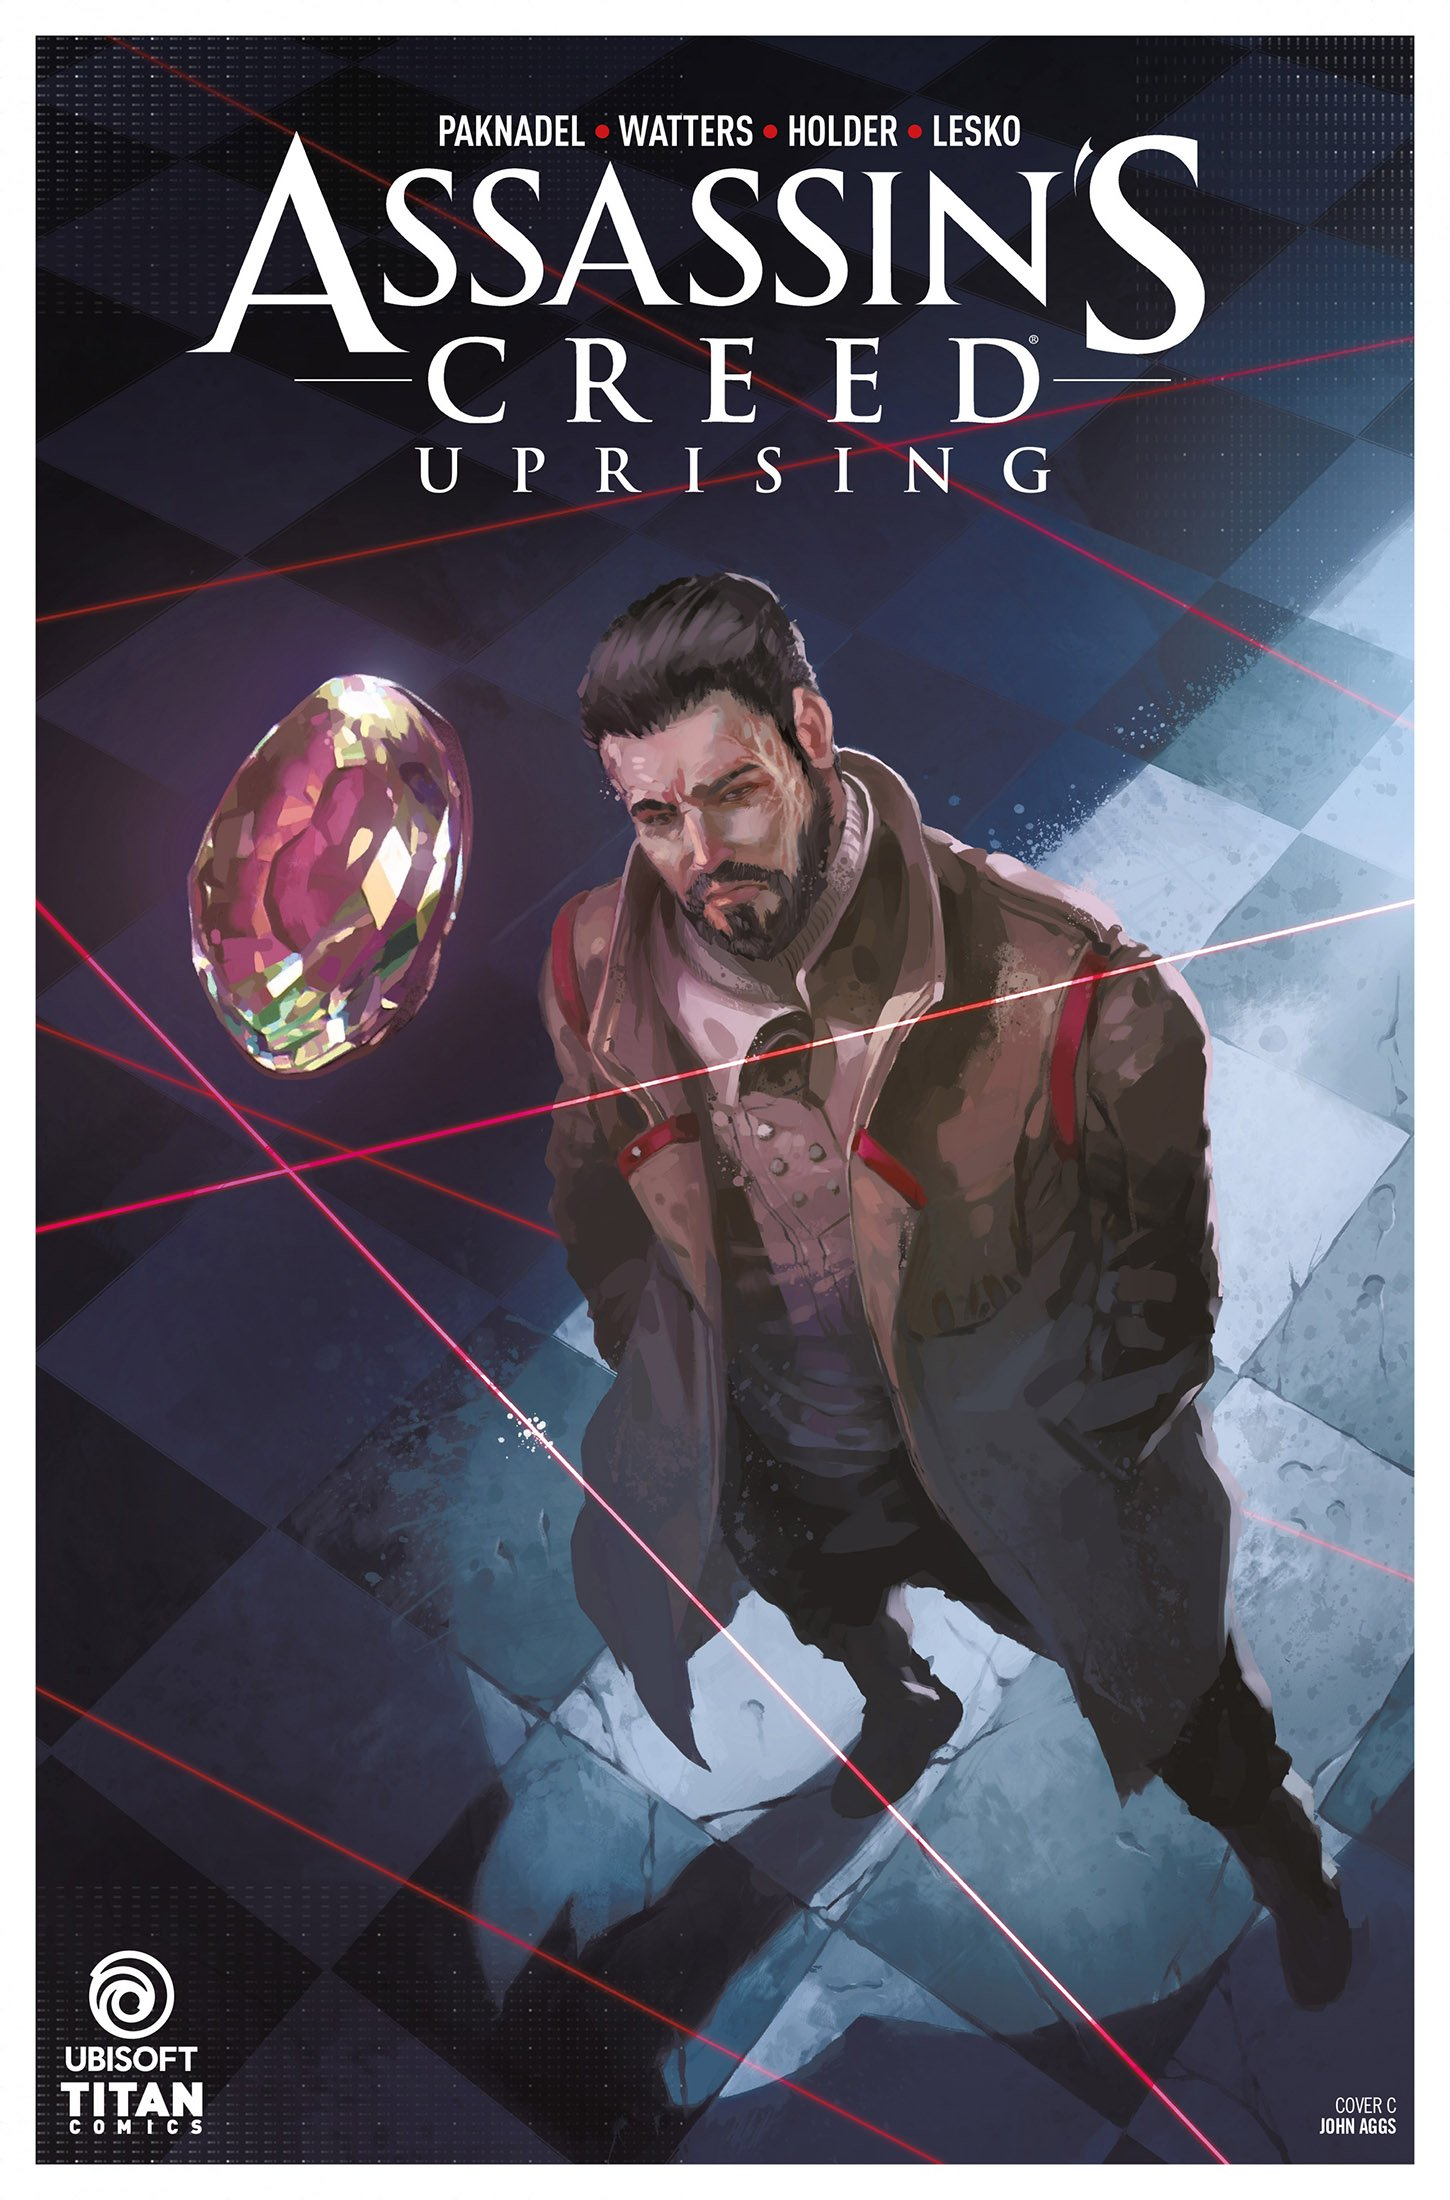 Assassin's Creed - Uprising 06 (September 2017) (cover c)